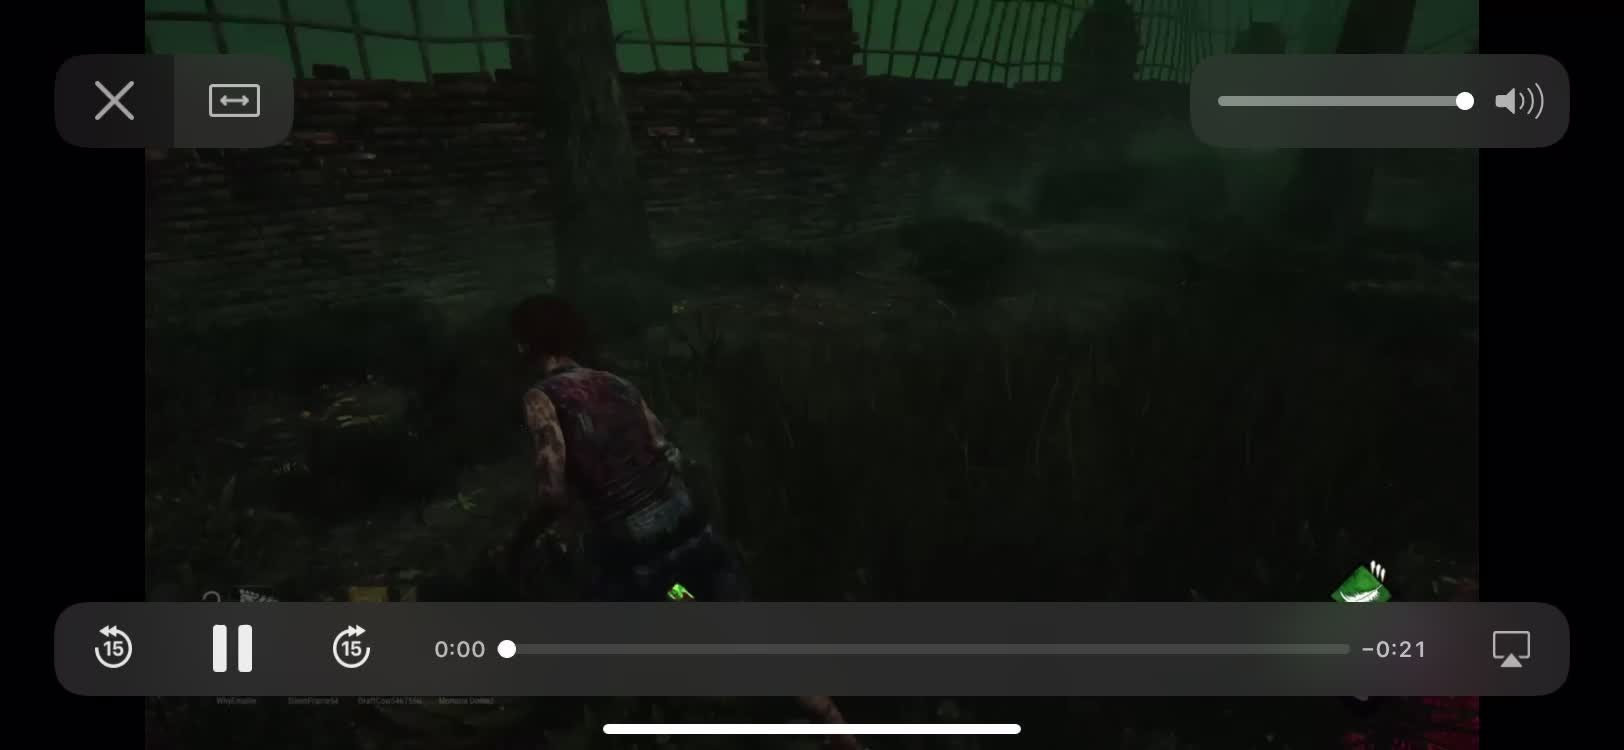 Dead by Daylight: General - I'M QUAKING 😫😫 video cover image 0